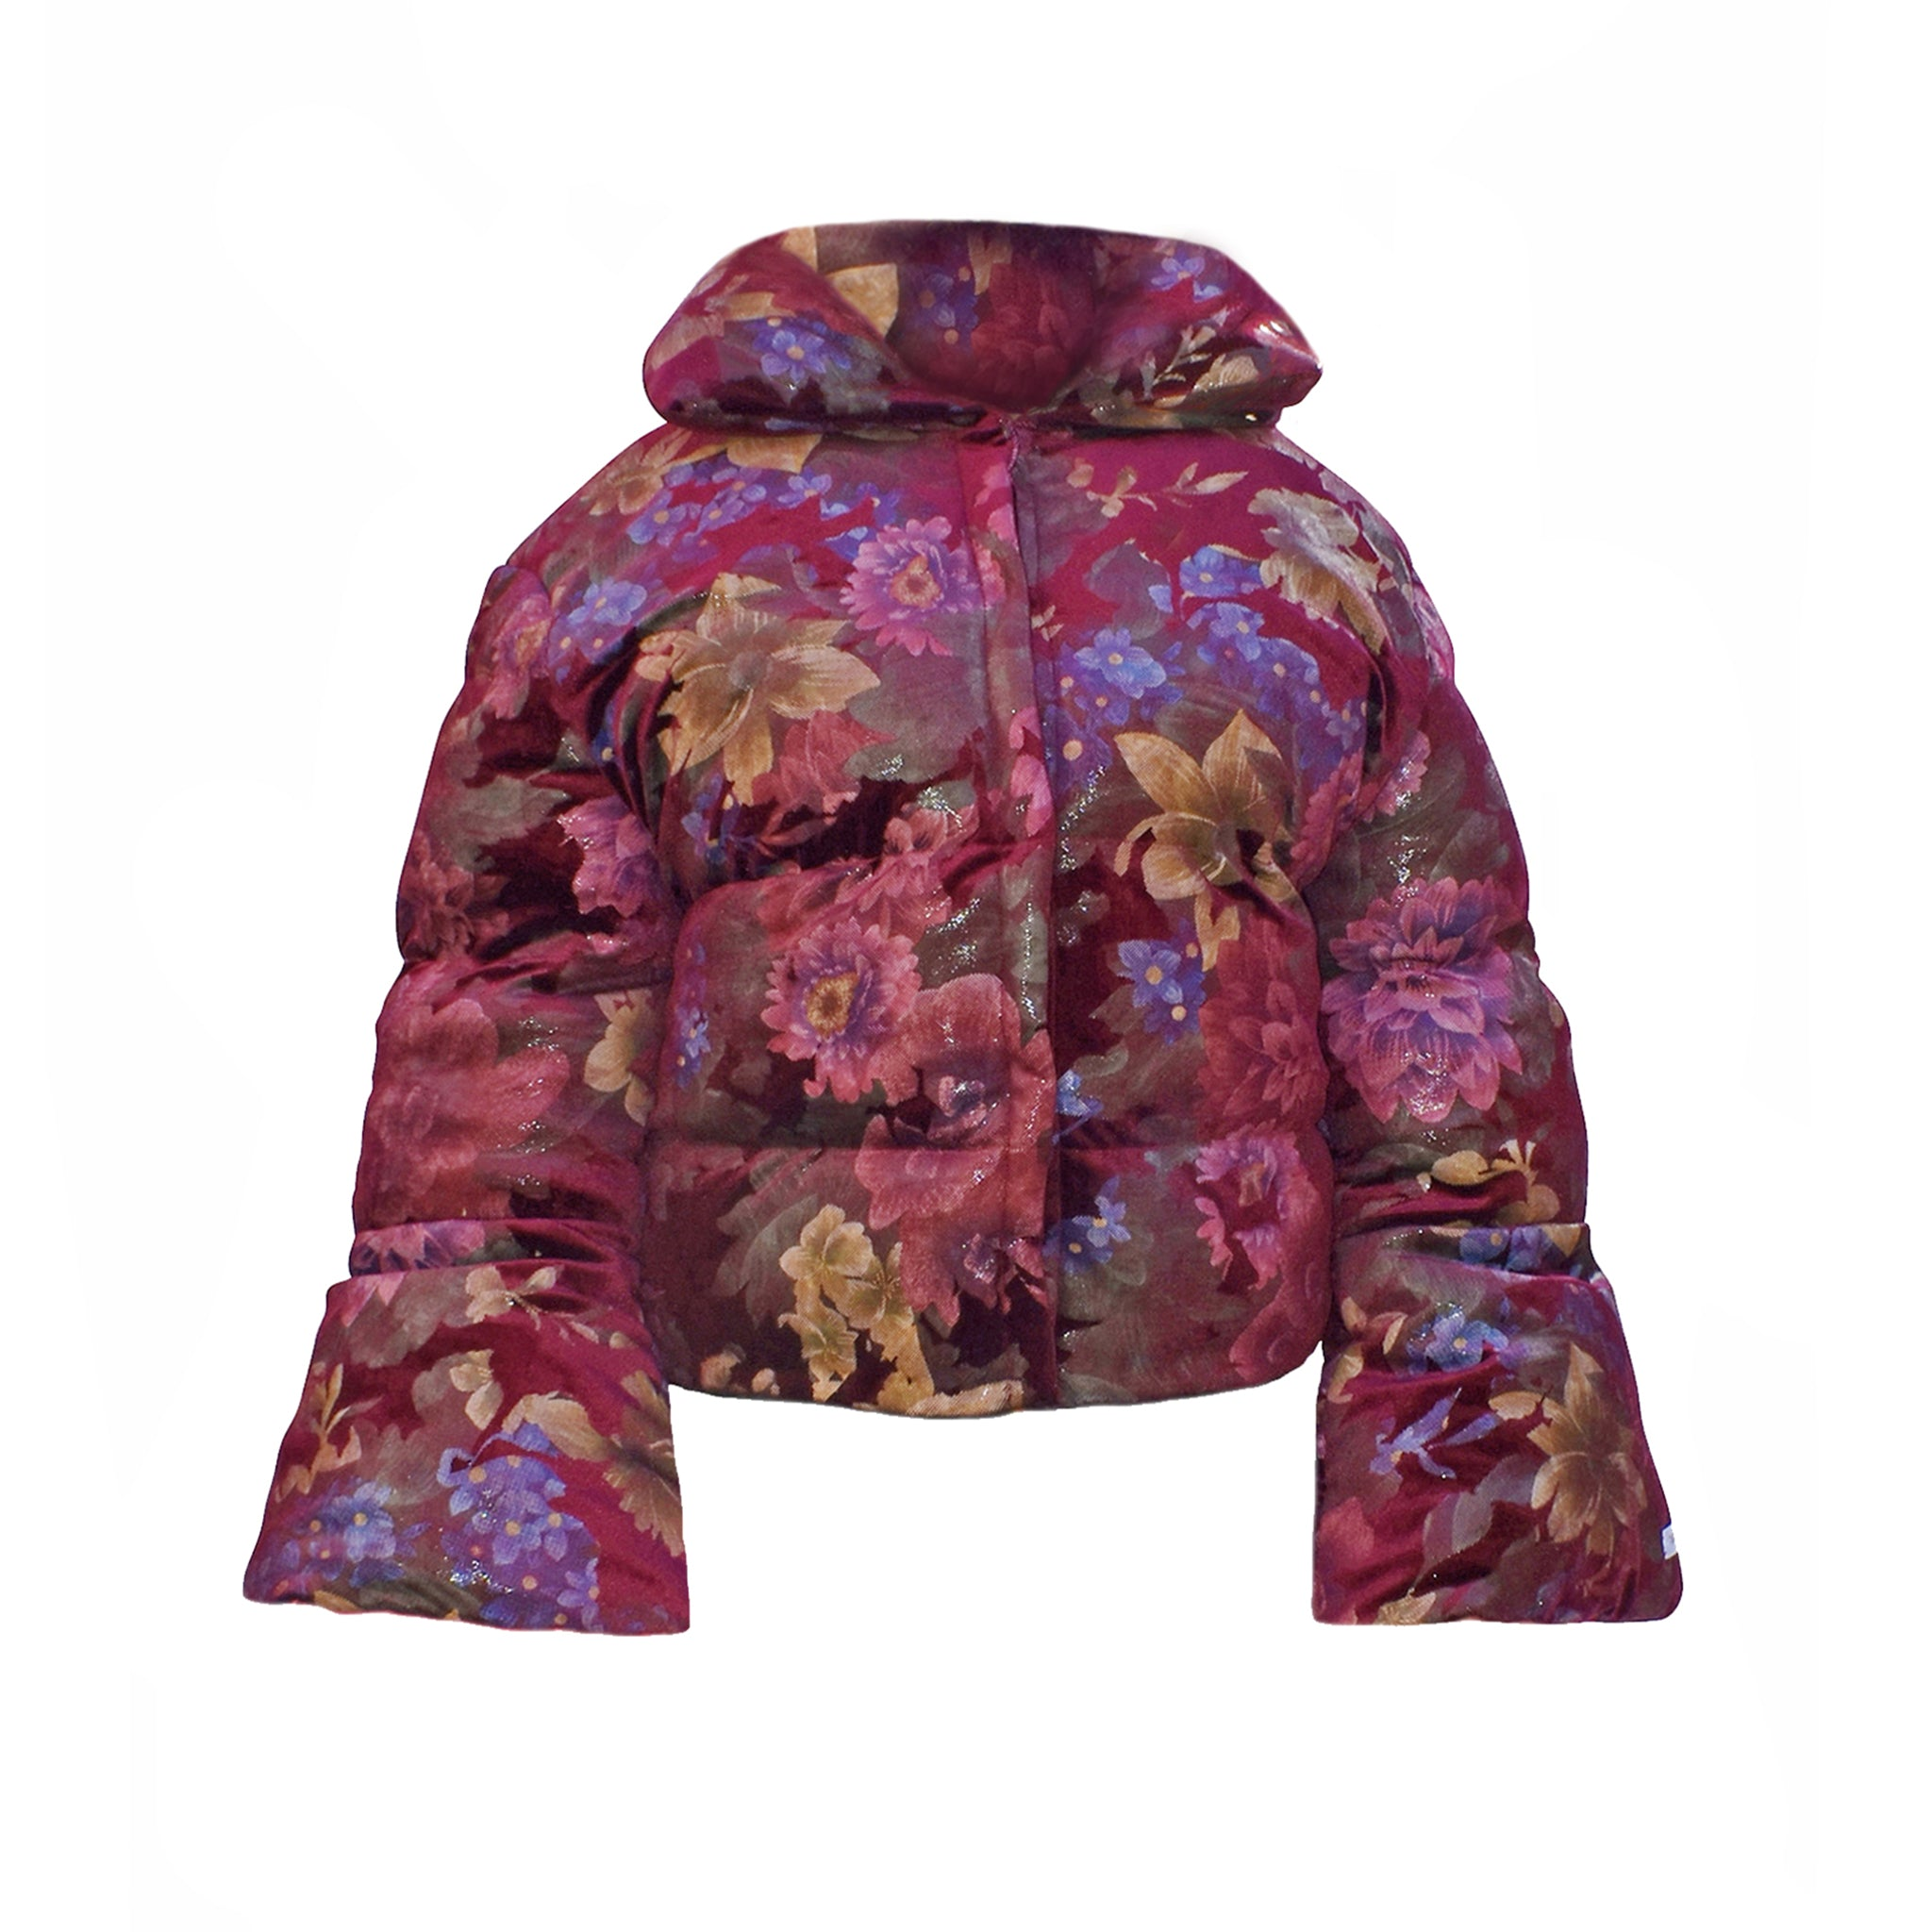 No Wallflower Project Opera Oversized Puffer in Wine Floral velvet